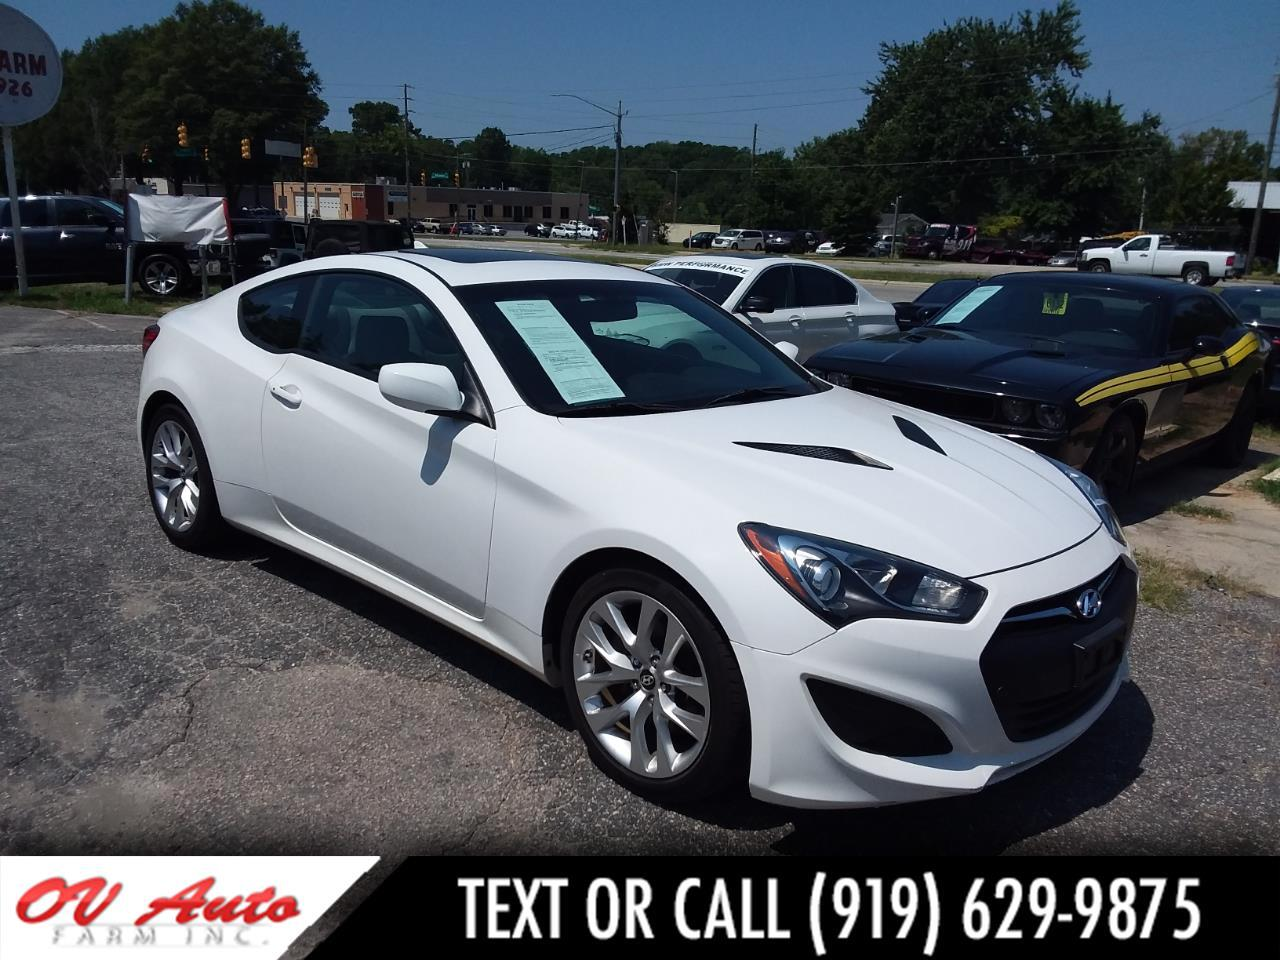 2013 Hyundai Genesis Coupe For Sale >> Hyundai Genesis Coupe For Sale In Raleigh Nc Auto Com